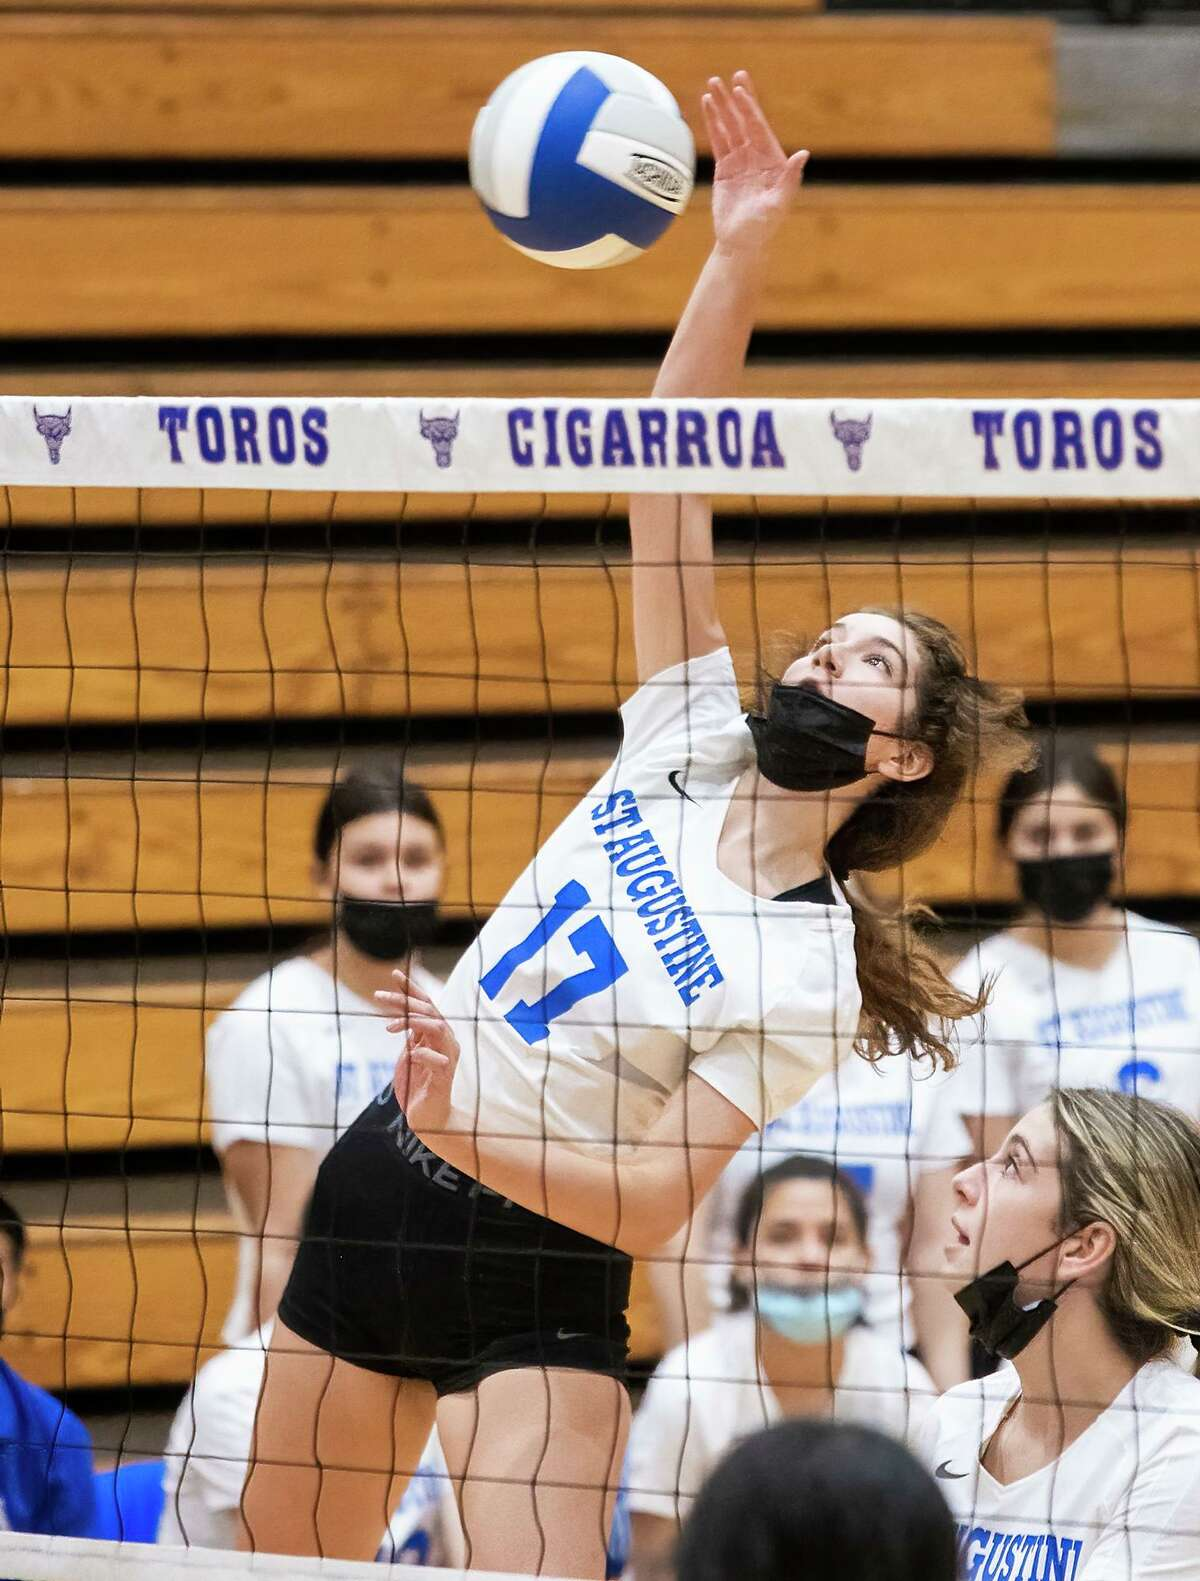 Guilda Moreno and St. Augustine swept Cigarroa 3-0 (25-13, 25-10, 25-14) on the road Wednesday.